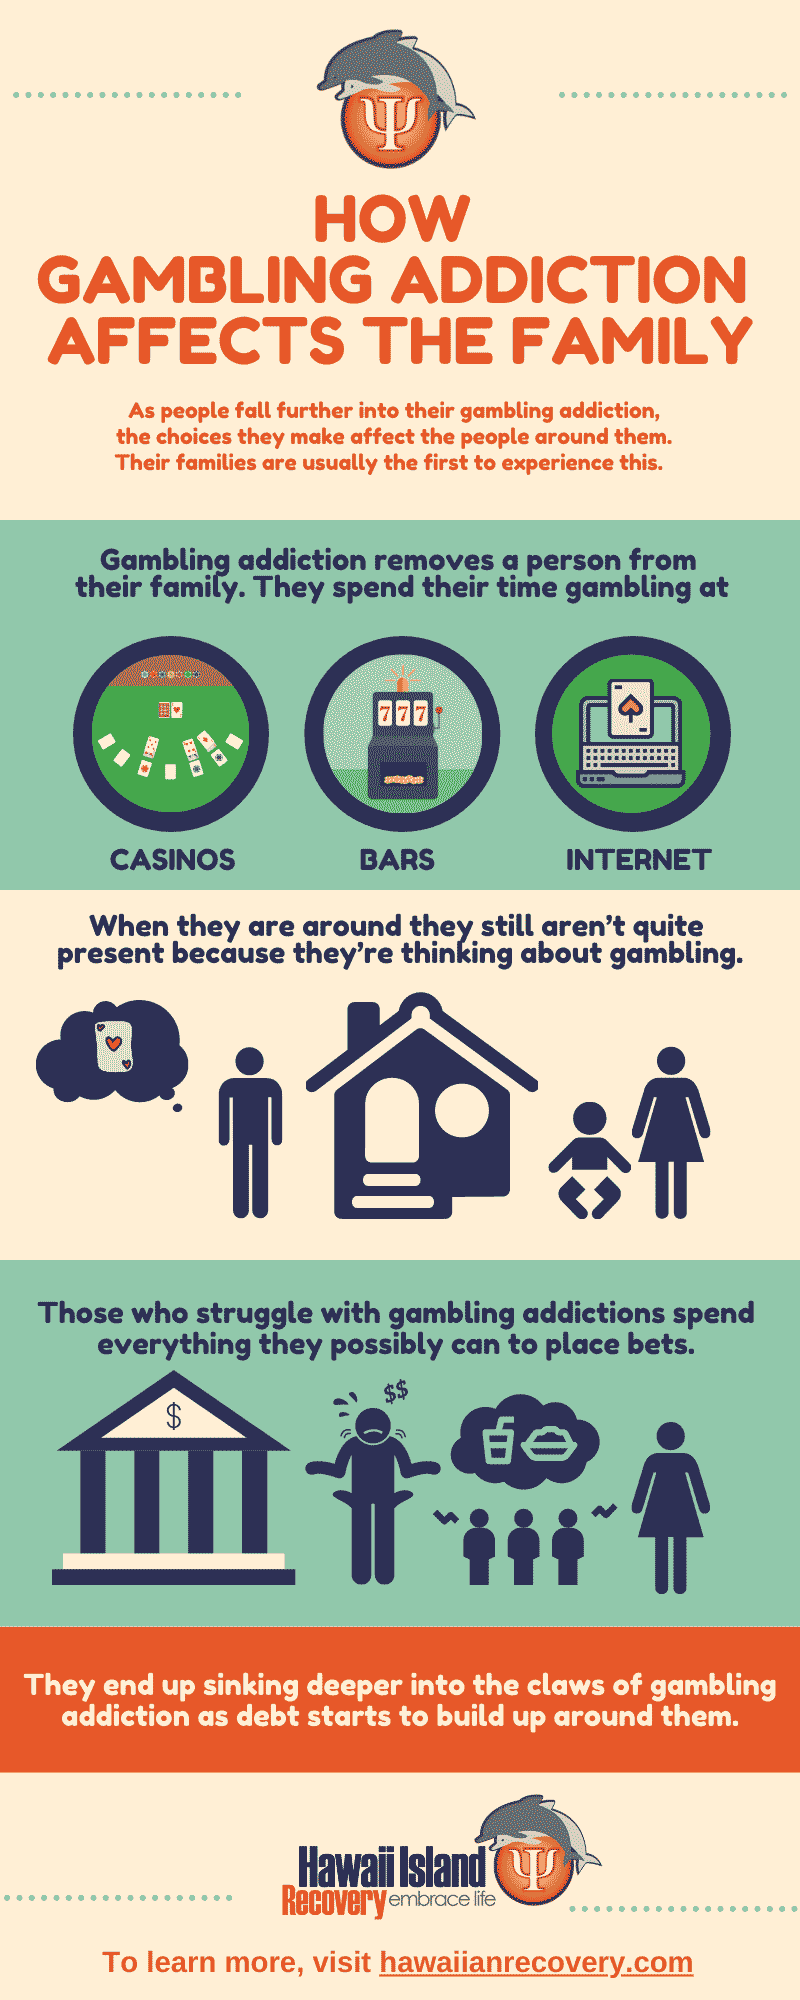 How gambling addiction affects the family